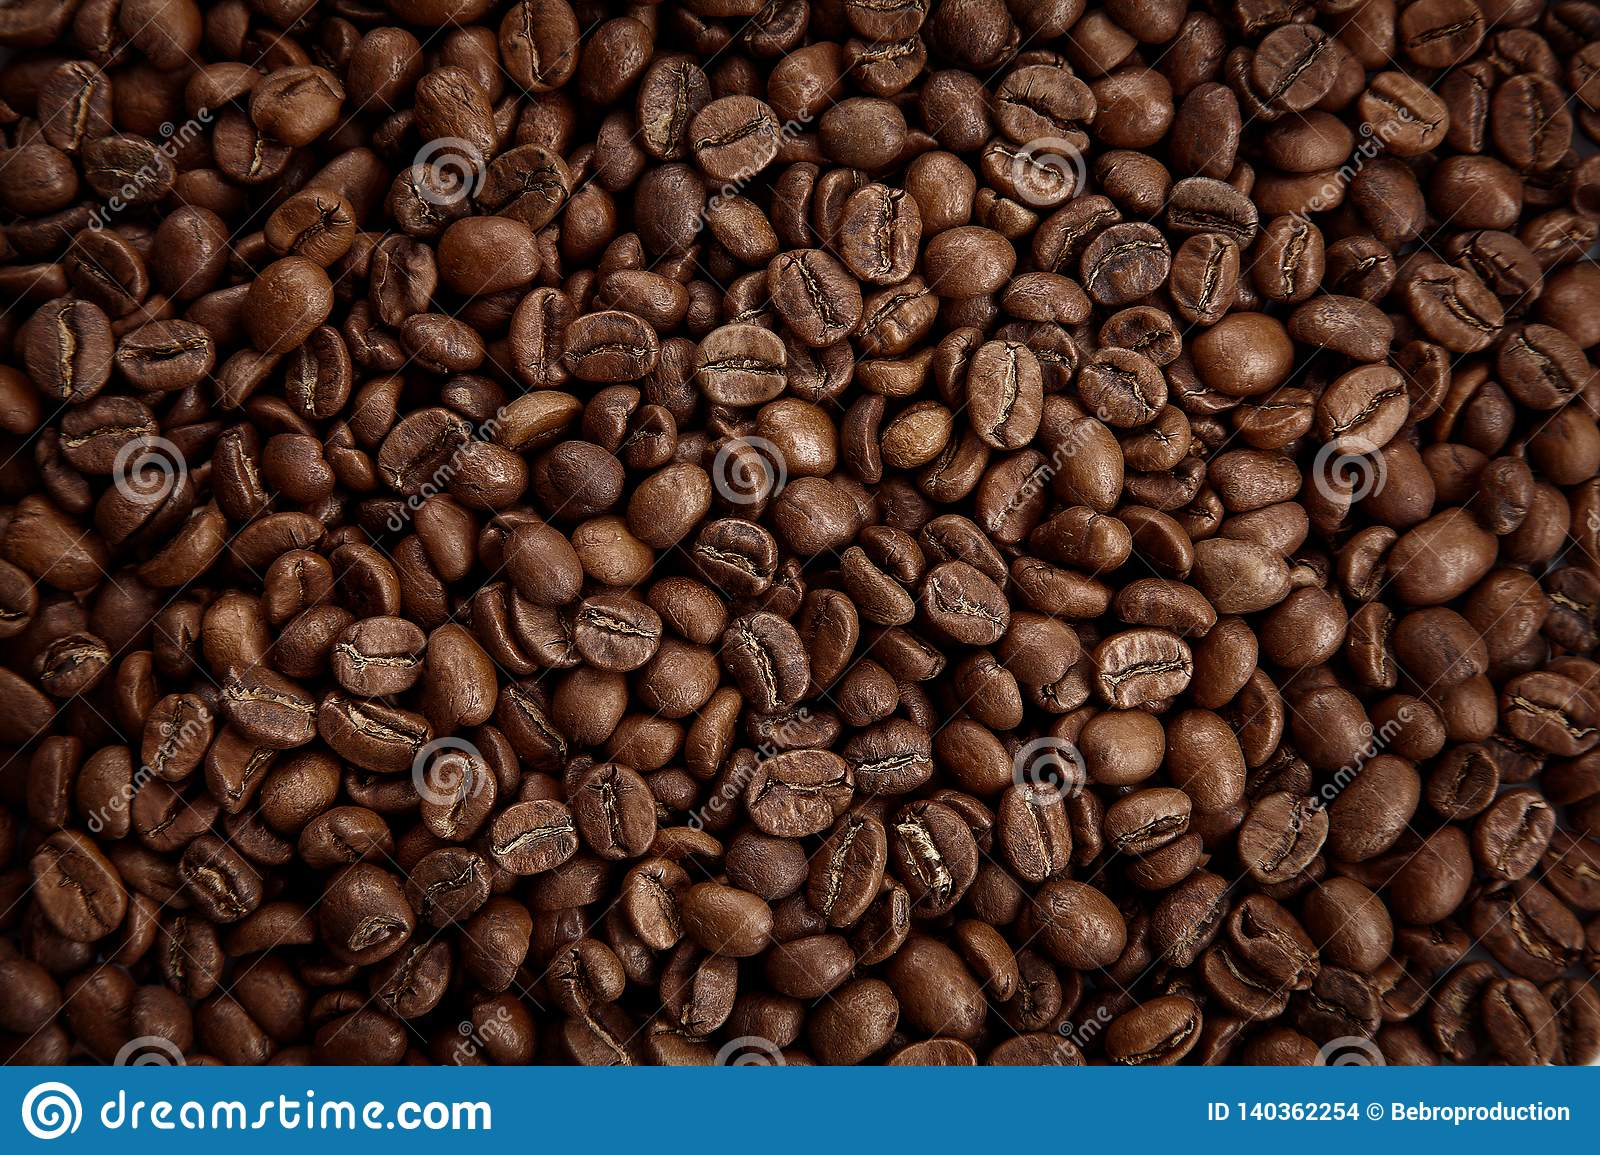 Roasted coffee beans texture. Close up view, top view